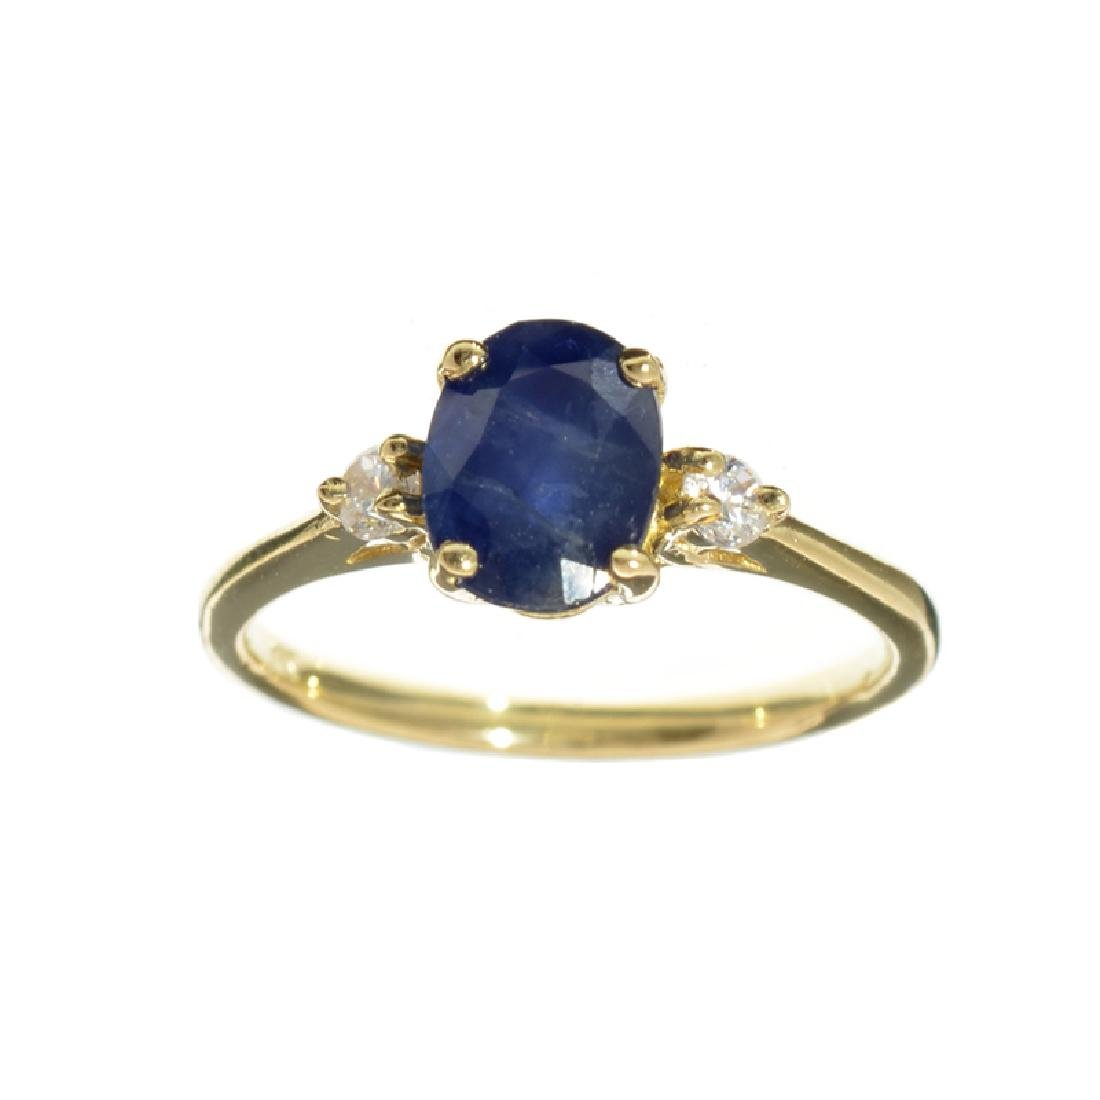 APP: 1k Fine Jewelry 14KT Gold, 1.61CT Blue And White